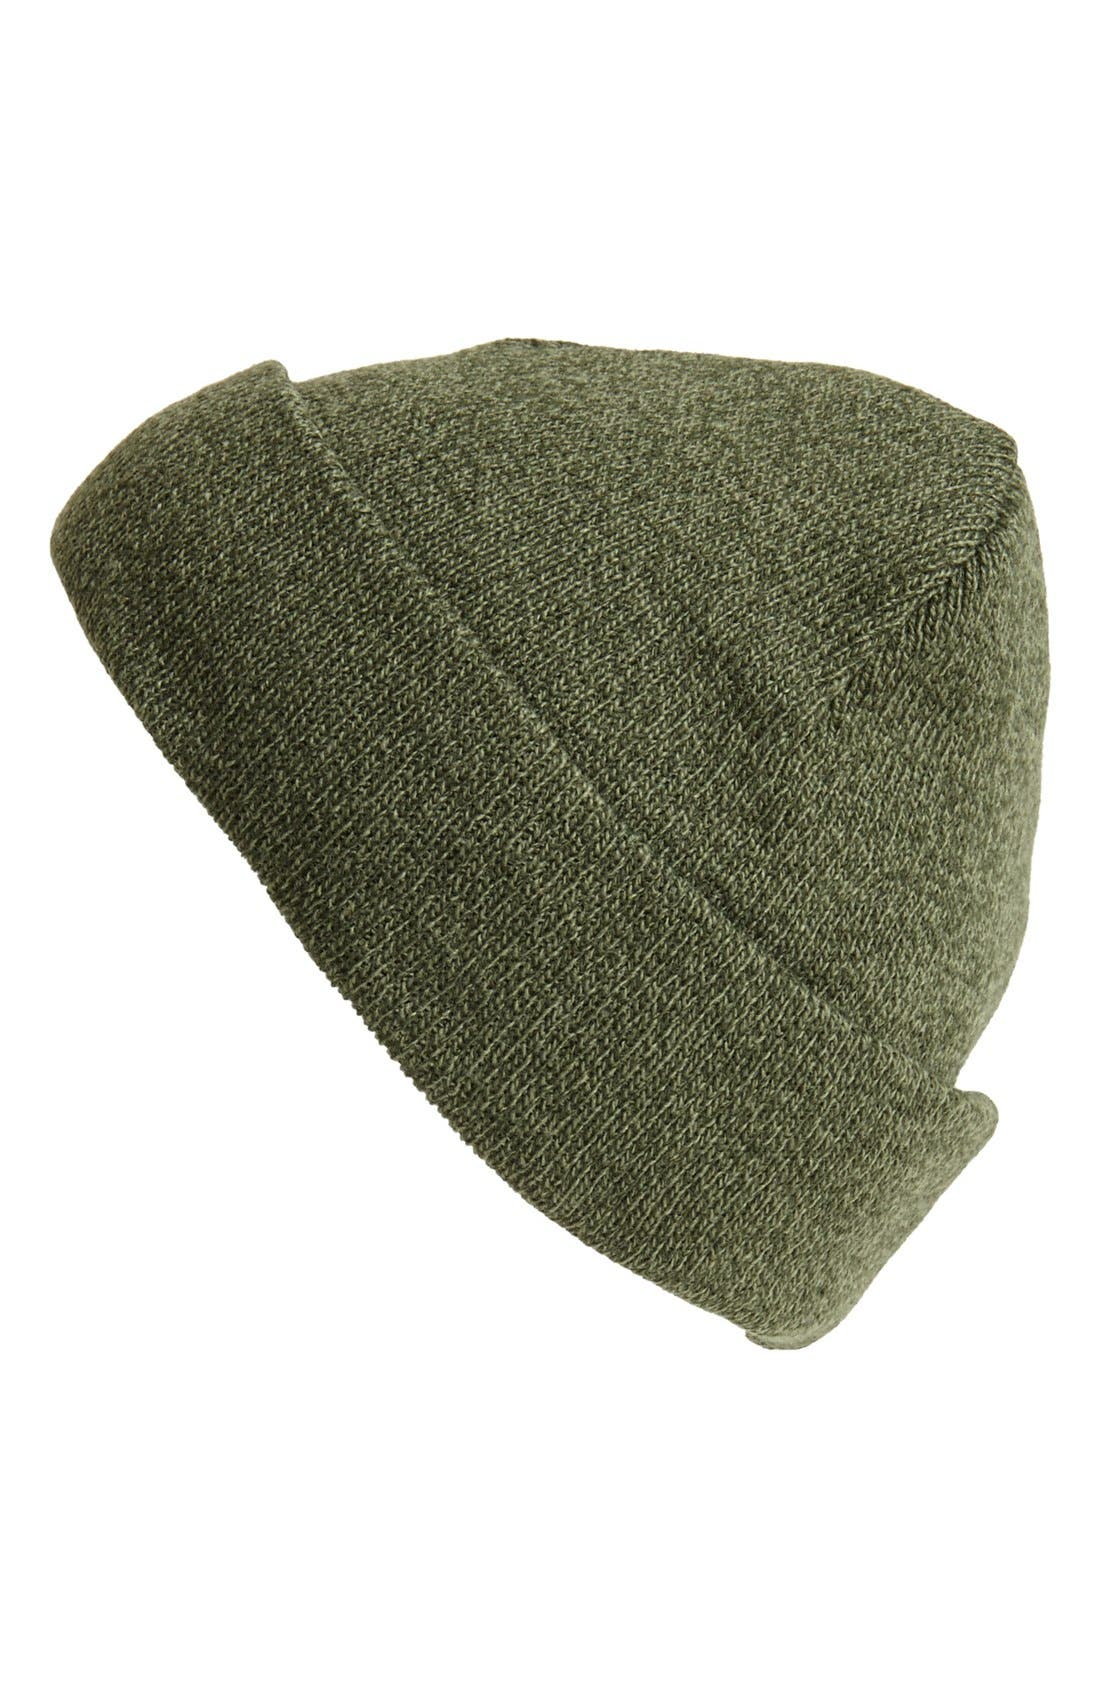 Alternate Image 1 Selected - Topman Knit Beanie